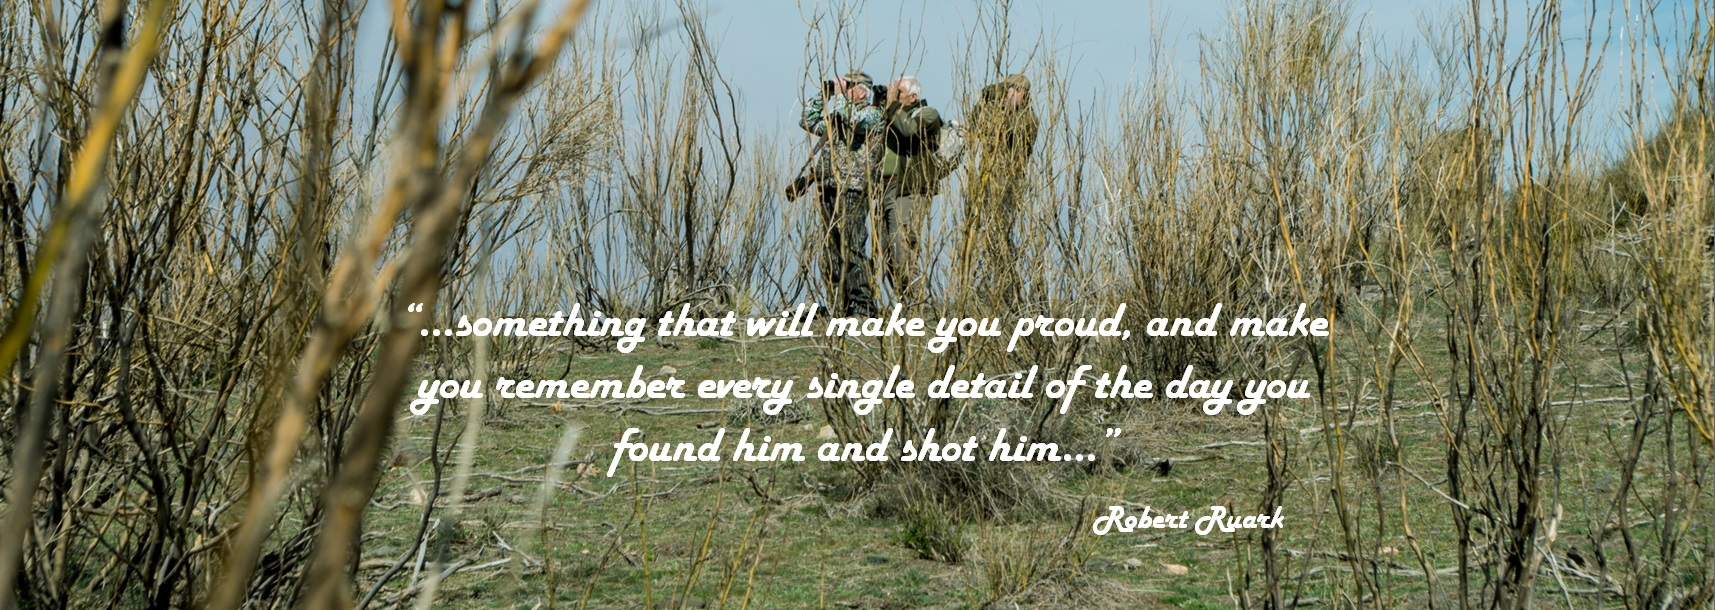 Quotes on hunting